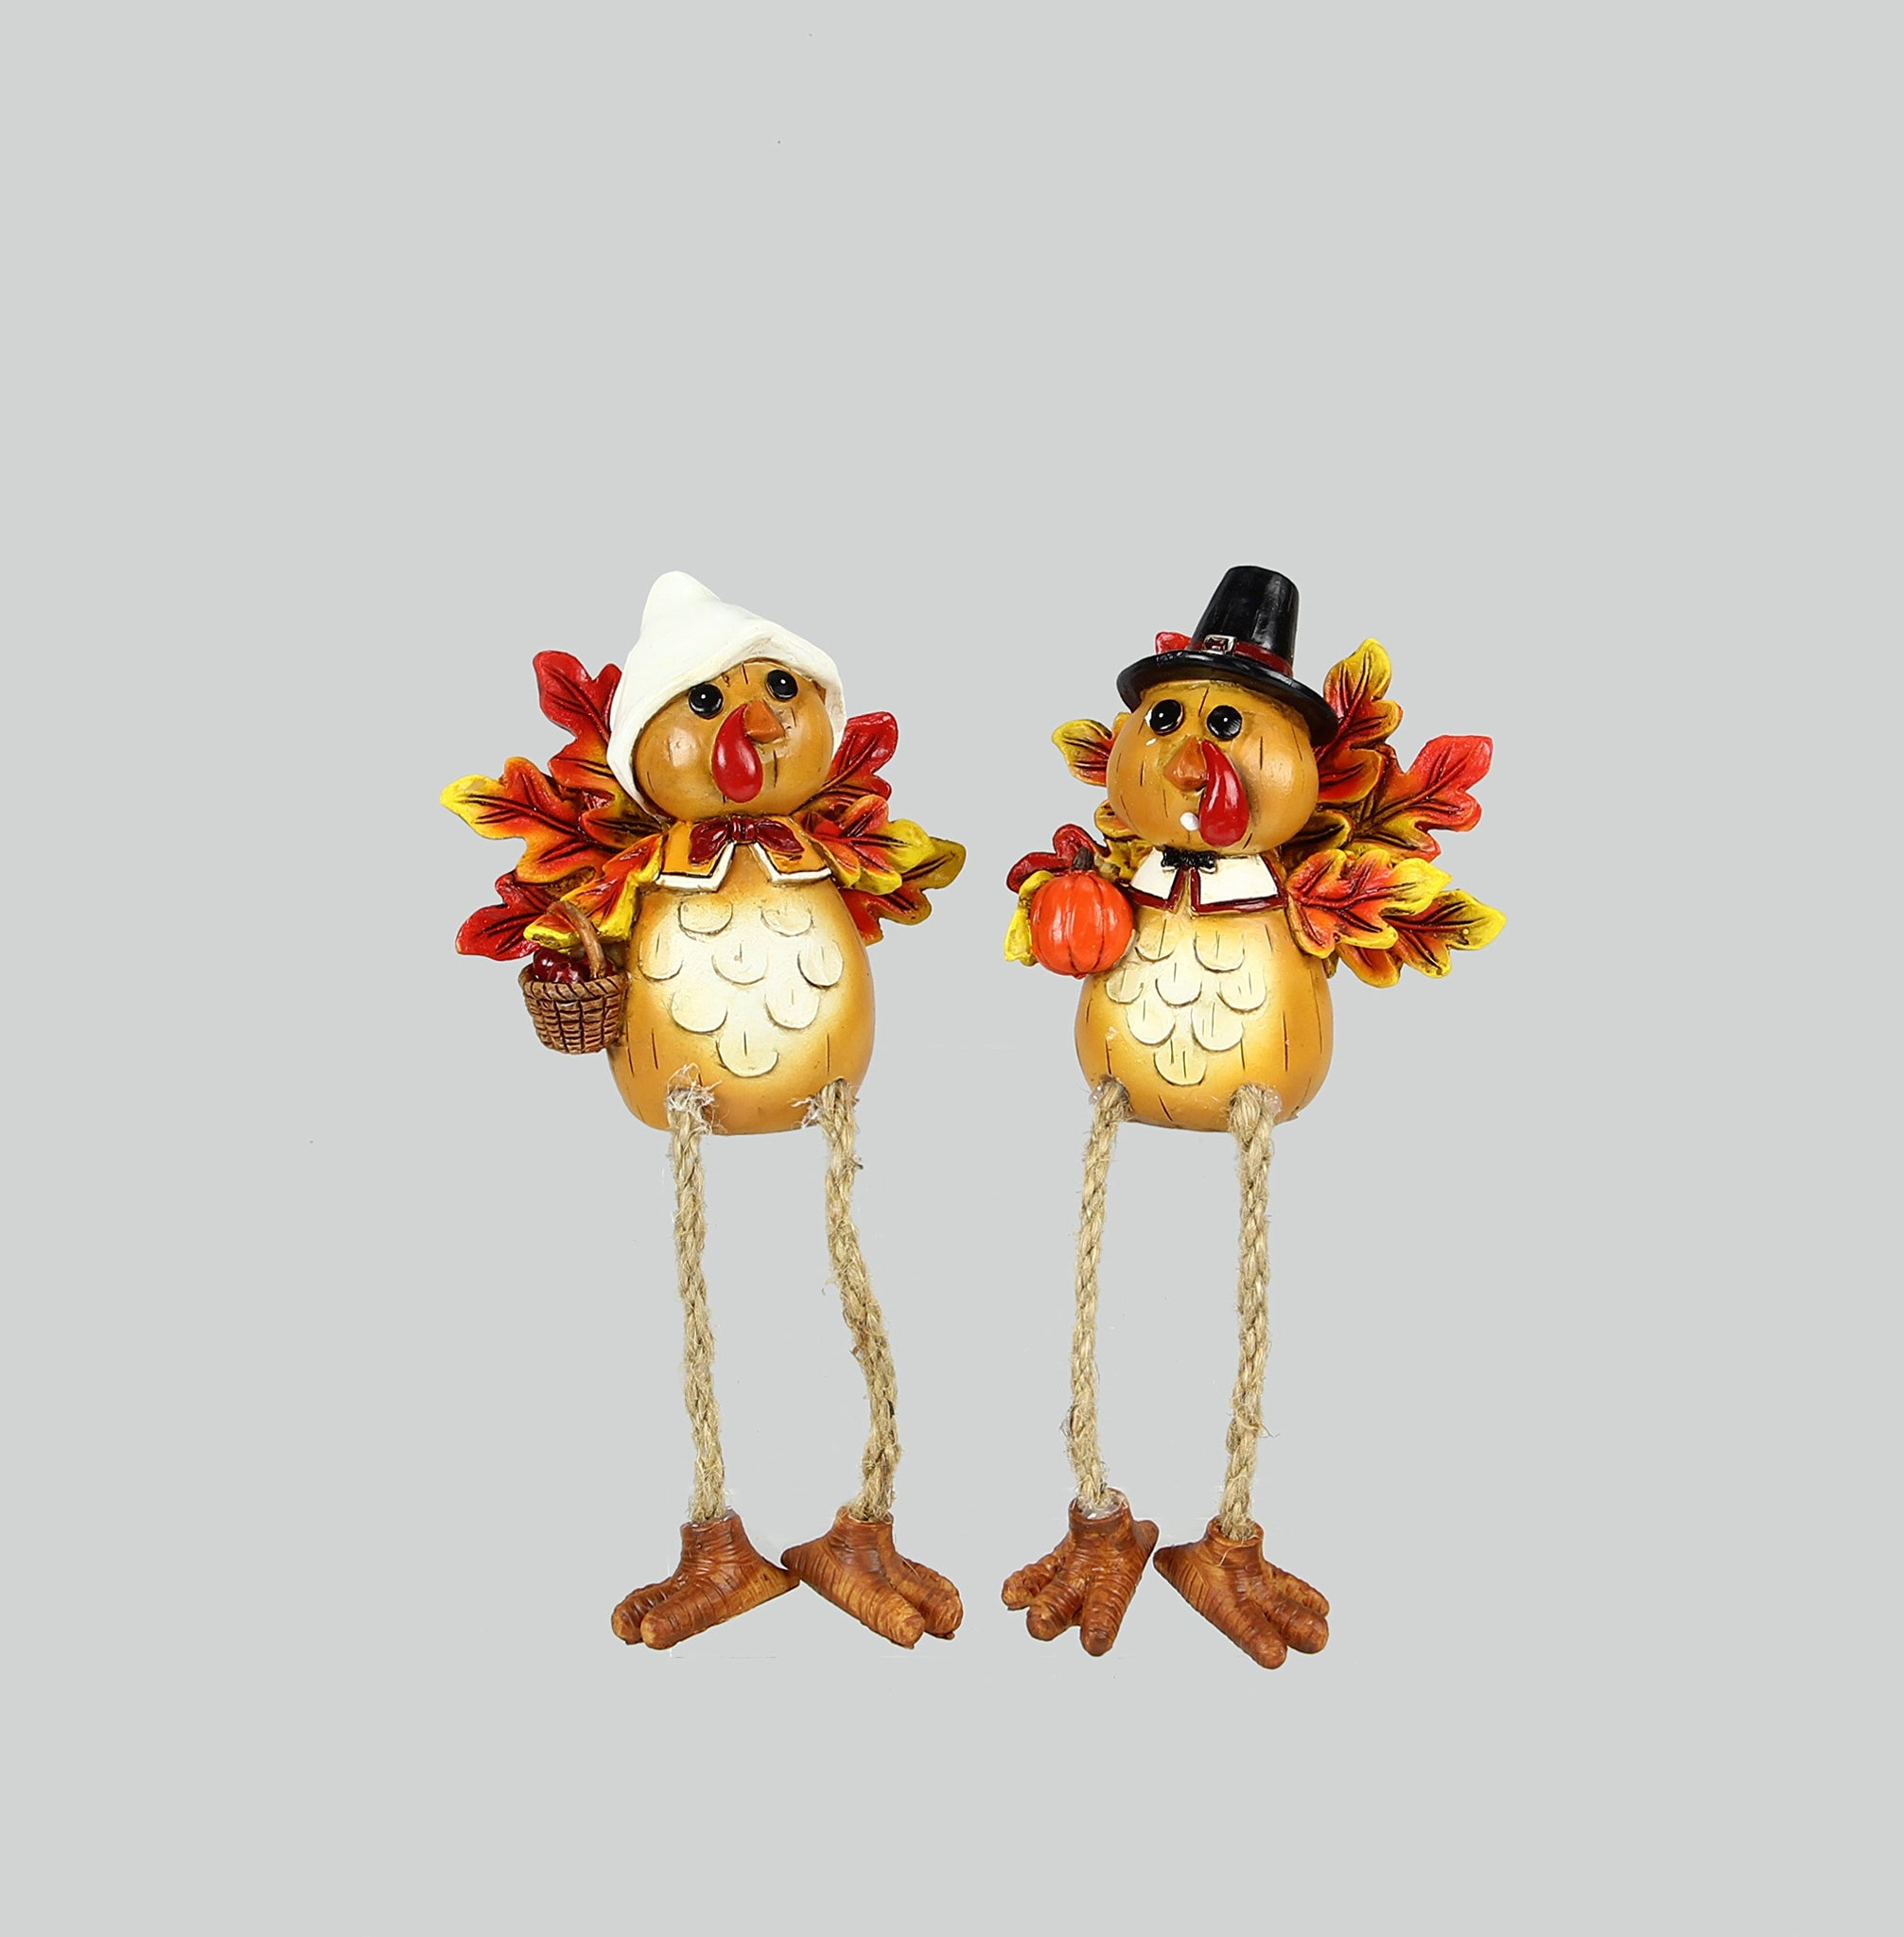 Youngs Fall Decor - Mr. and Mrs. Pilgrim Turkey Shelf Sitter 2pc